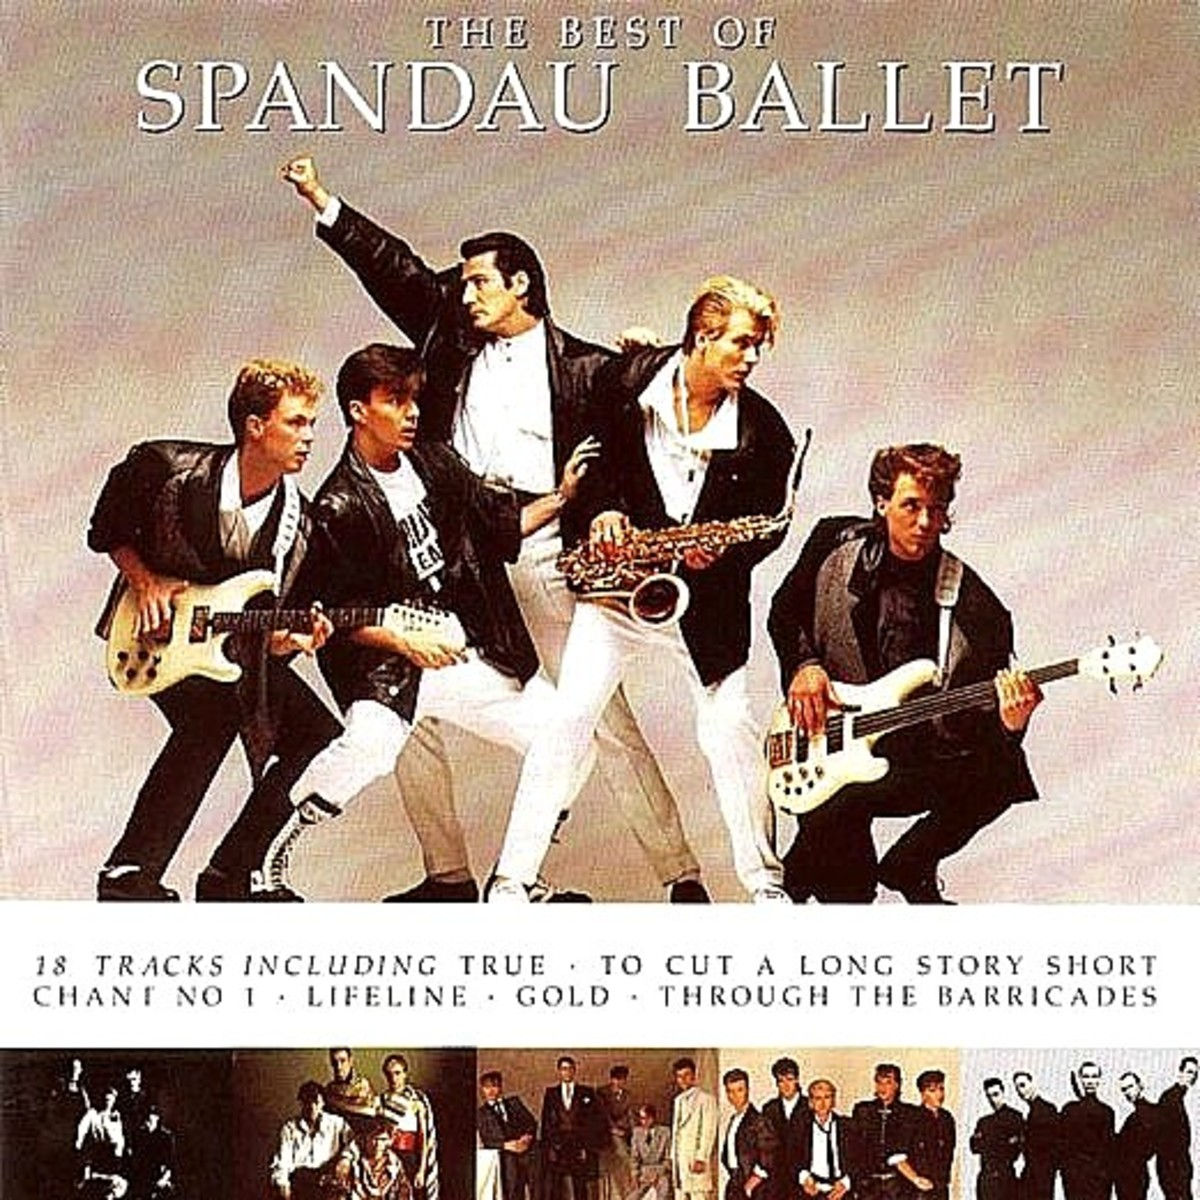 The Best Of Spandau Ballet - Front